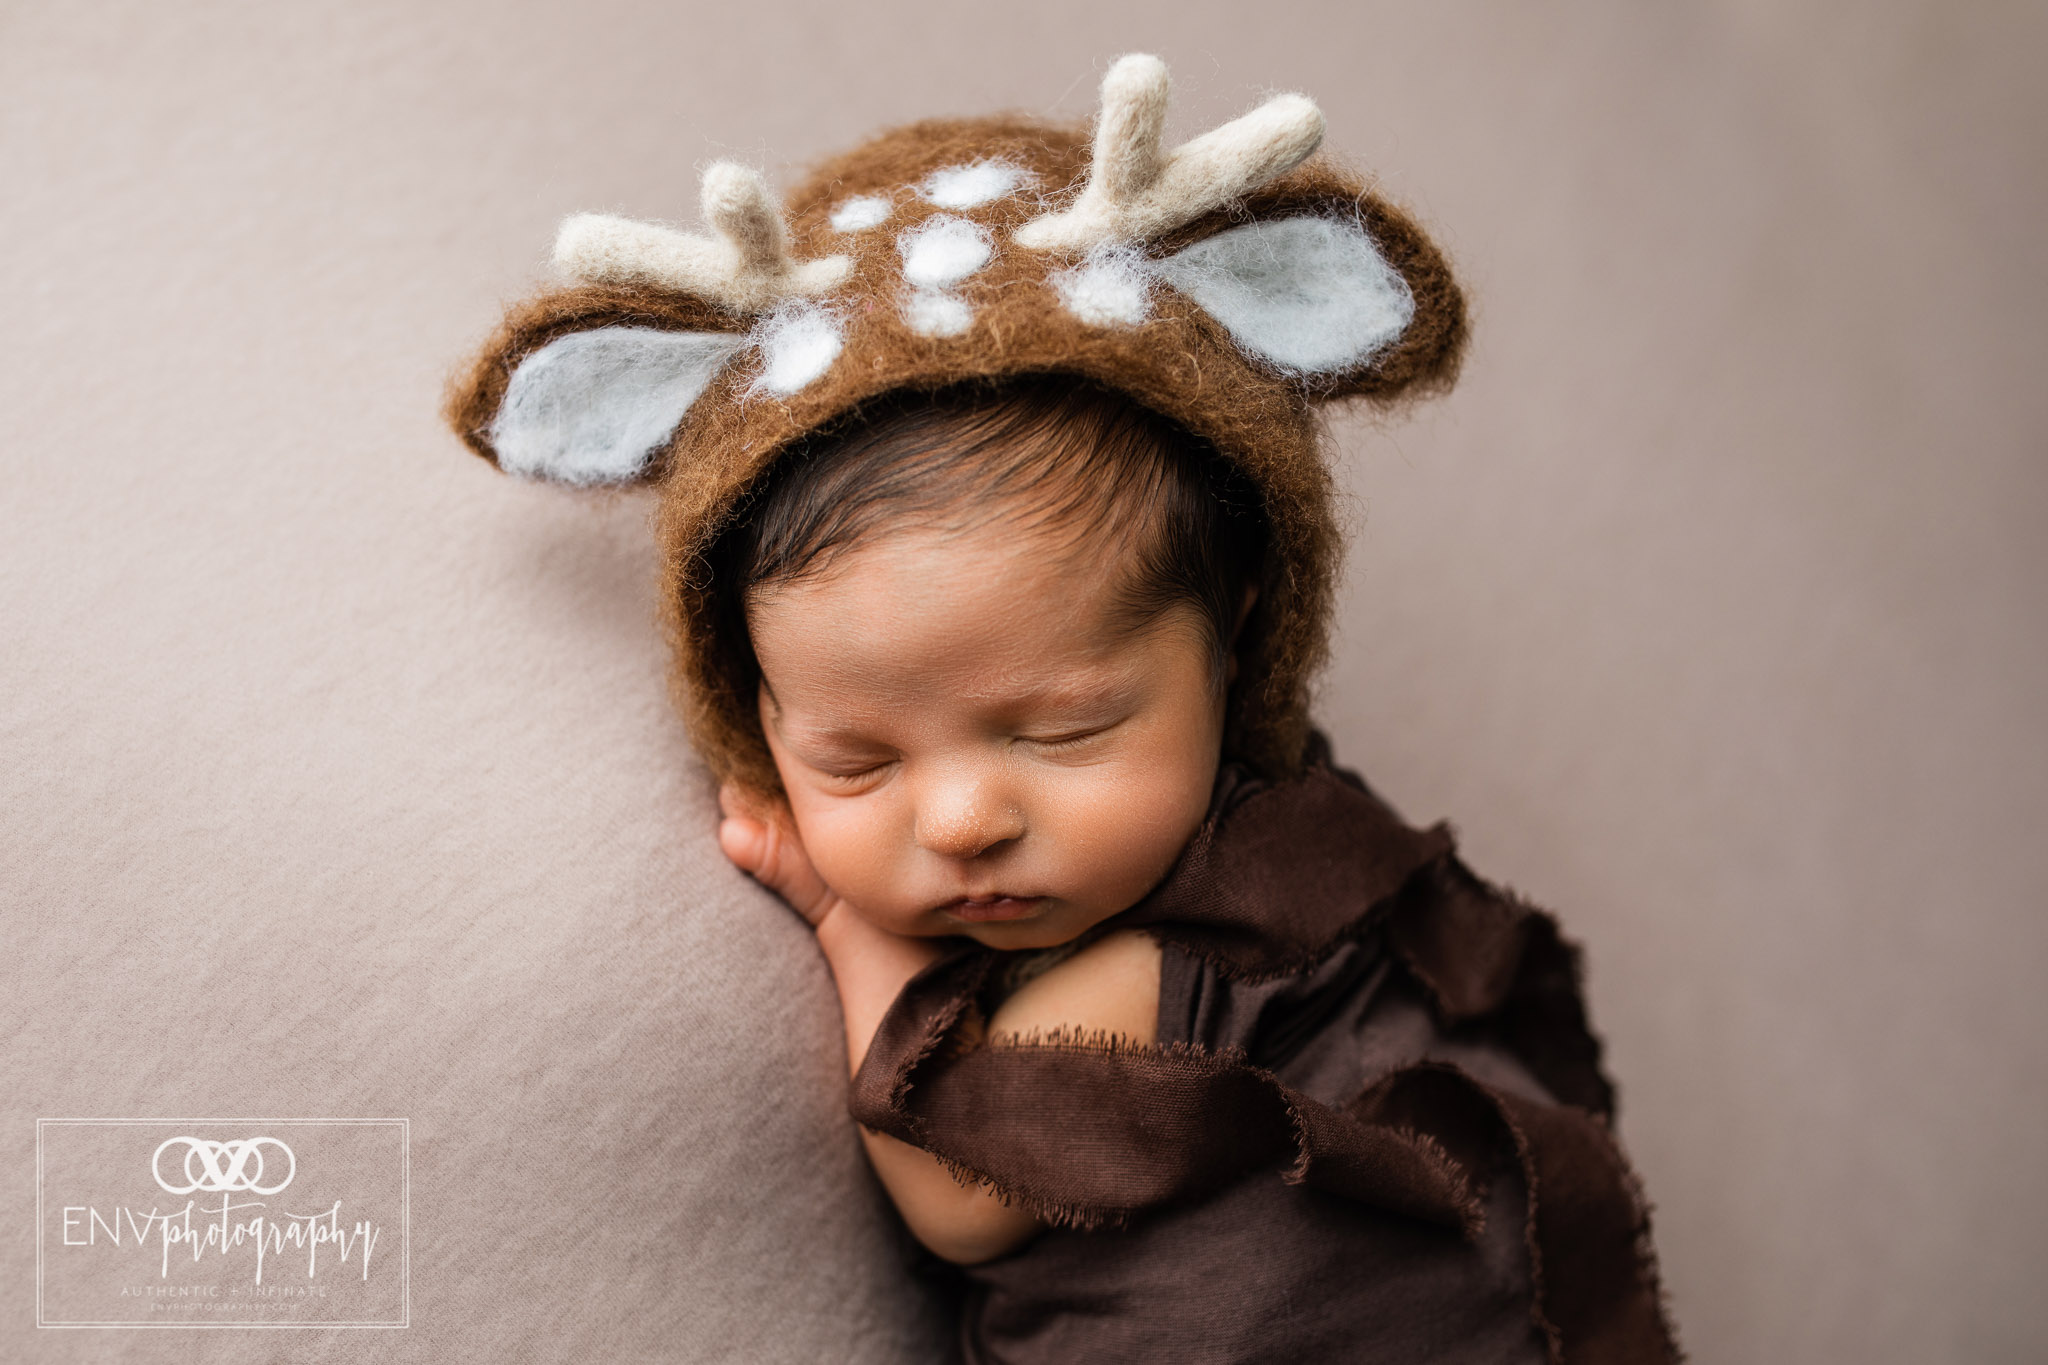 columbus mount vernon mansfield ohio newborn photographer (8).jpg